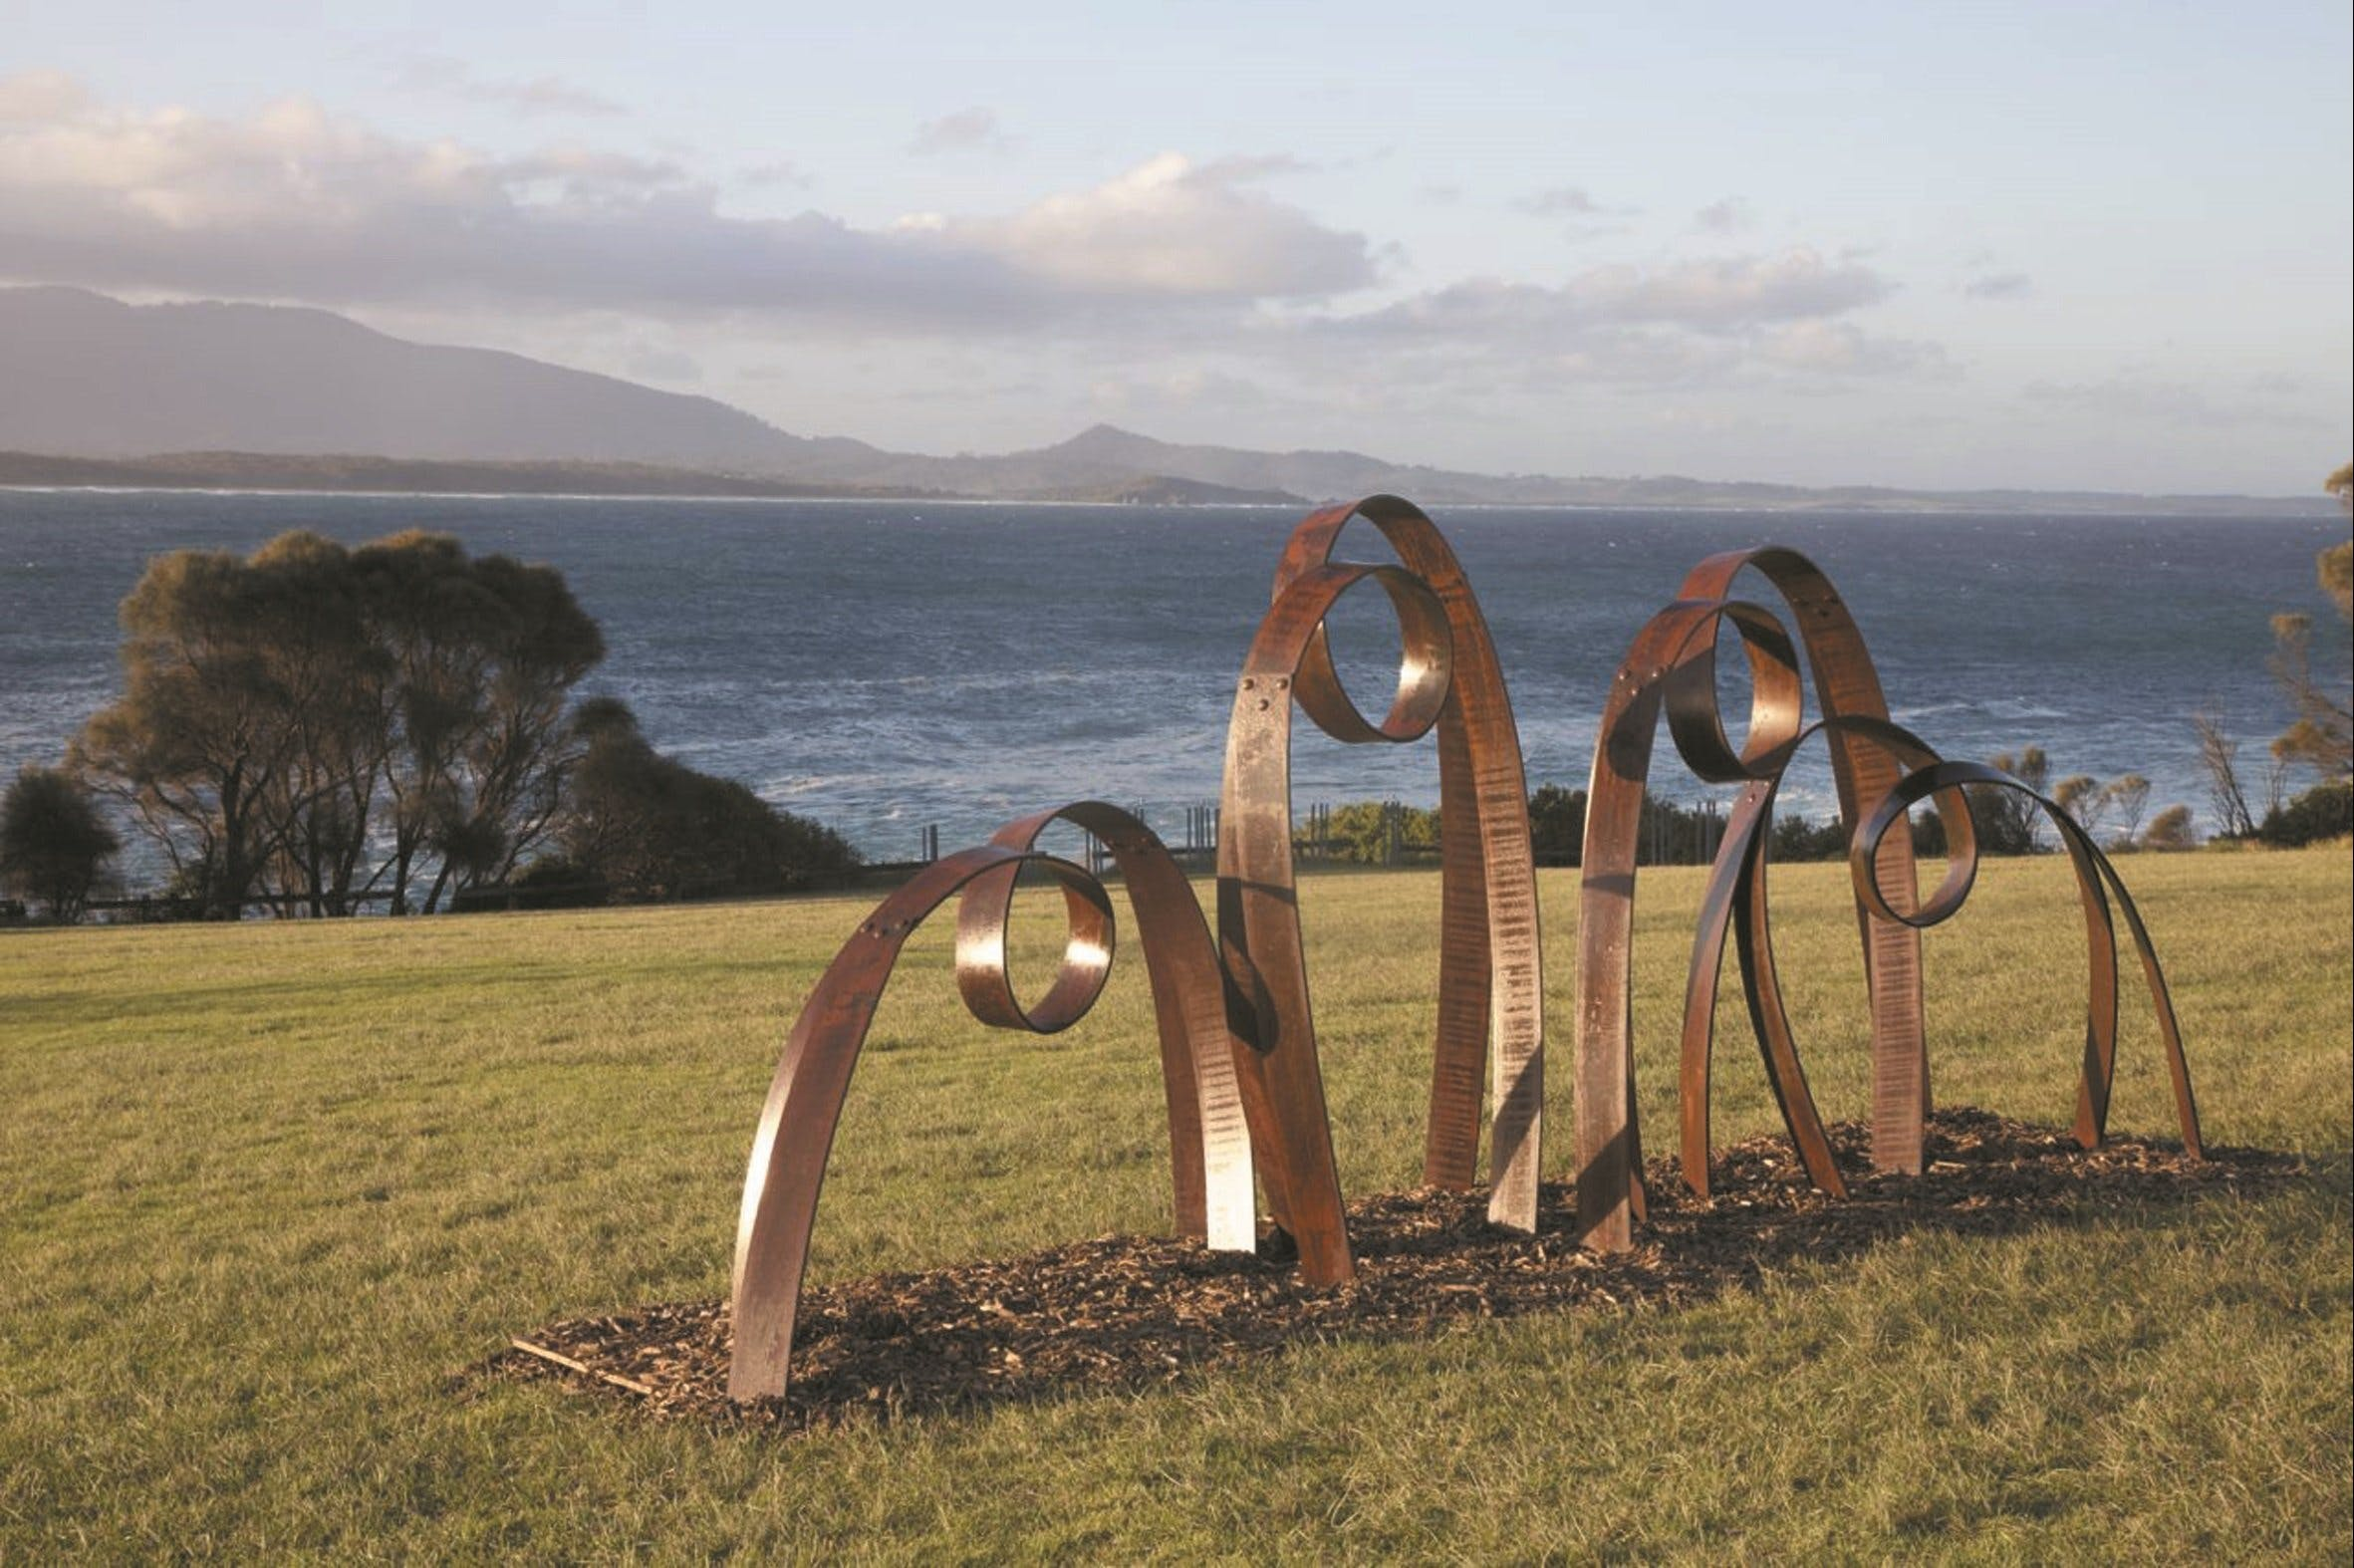 Sculpture Bermagui - Accommodation BNB